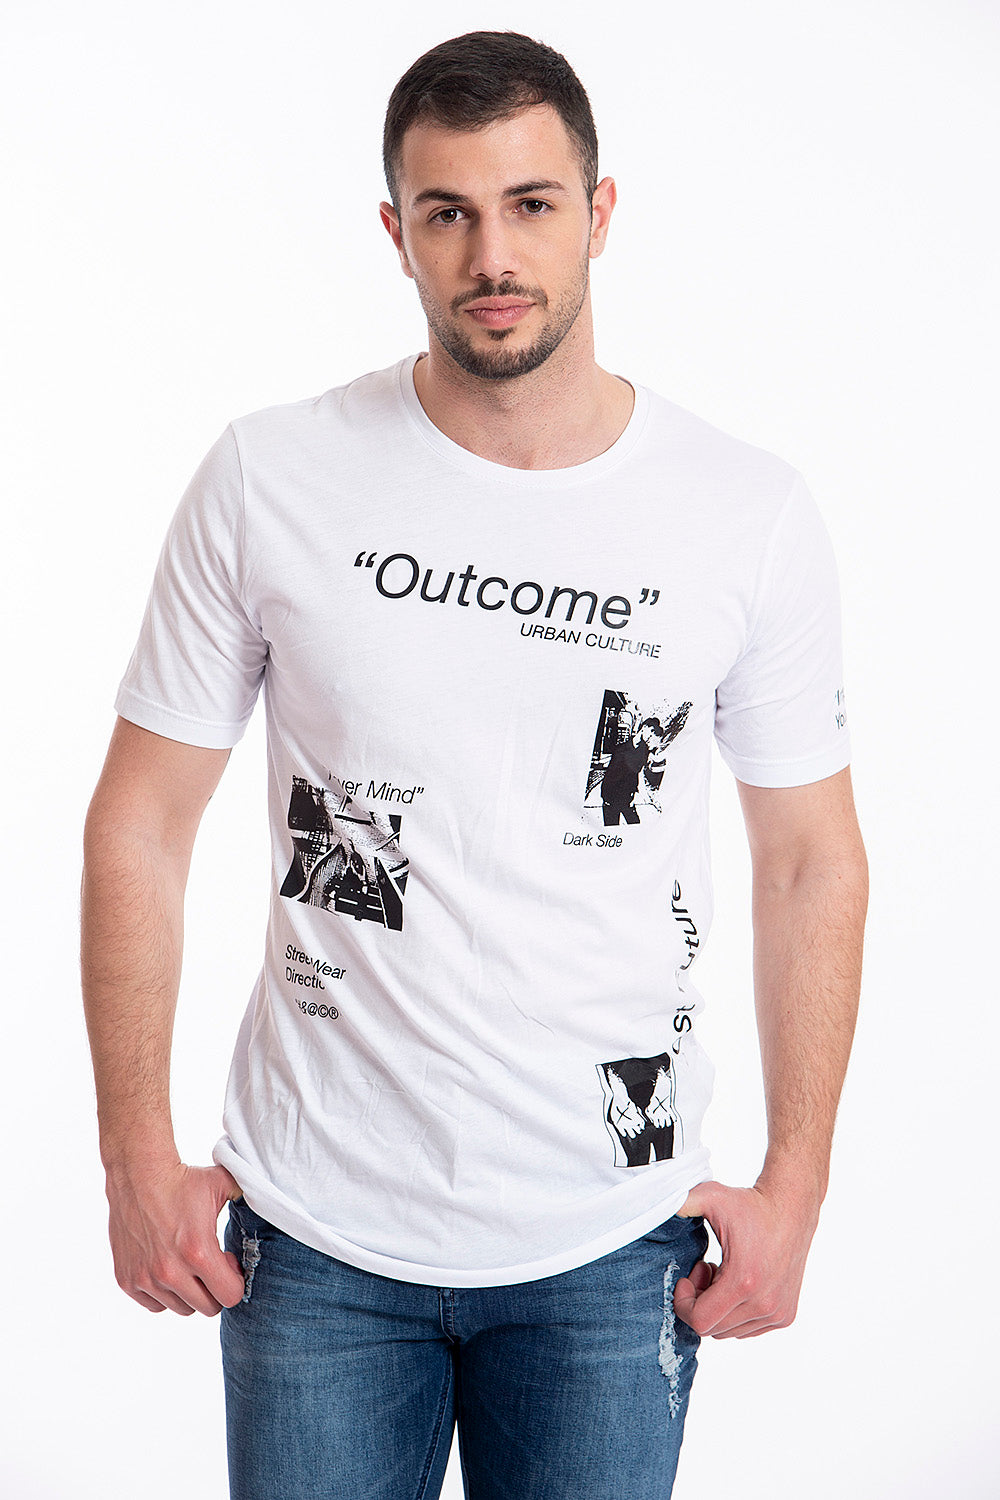 Outcome white t-shirt with texts and symbols